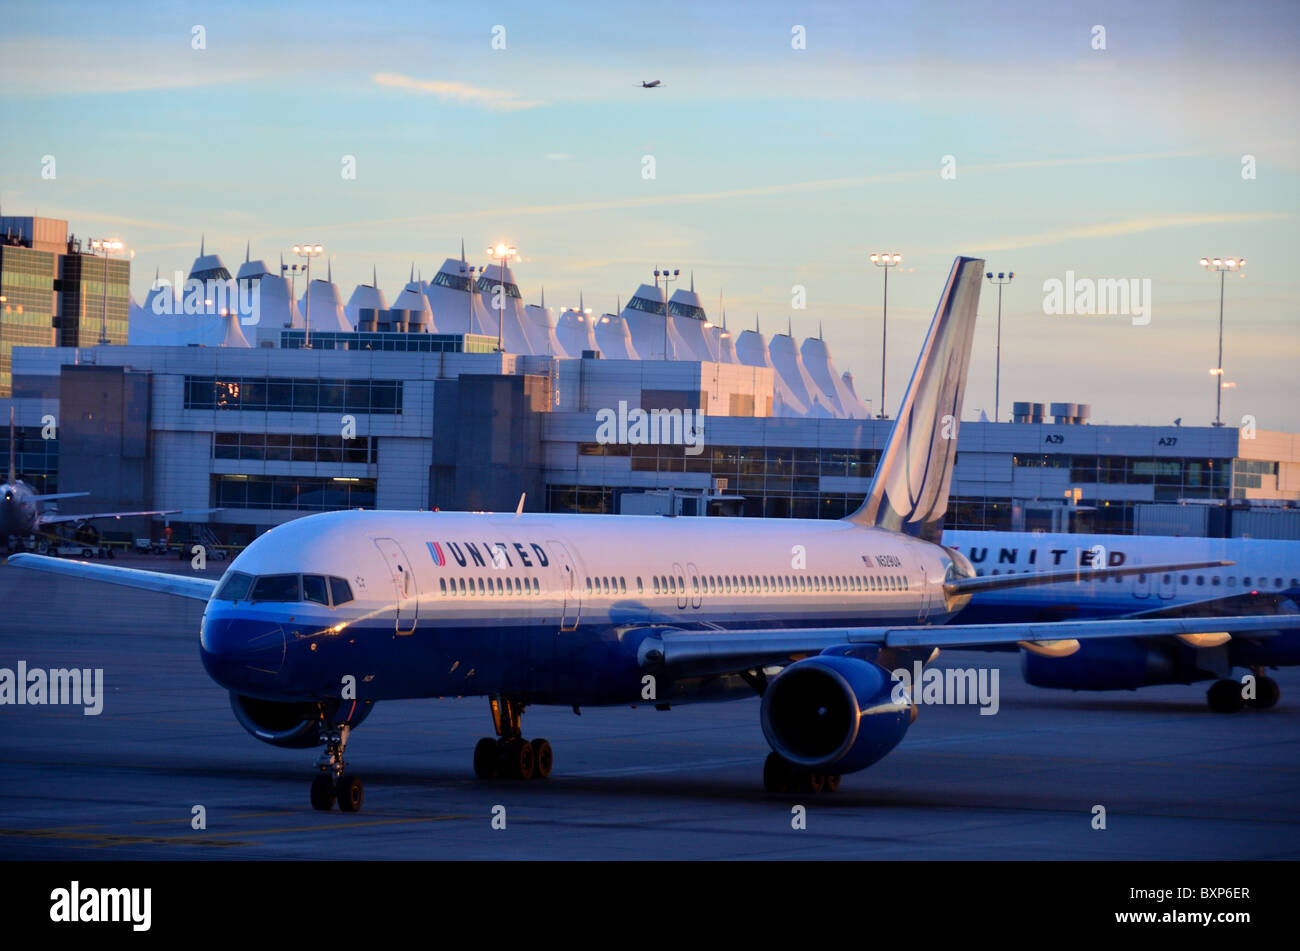 Airliners in airport tarmac. USA - Stock Image